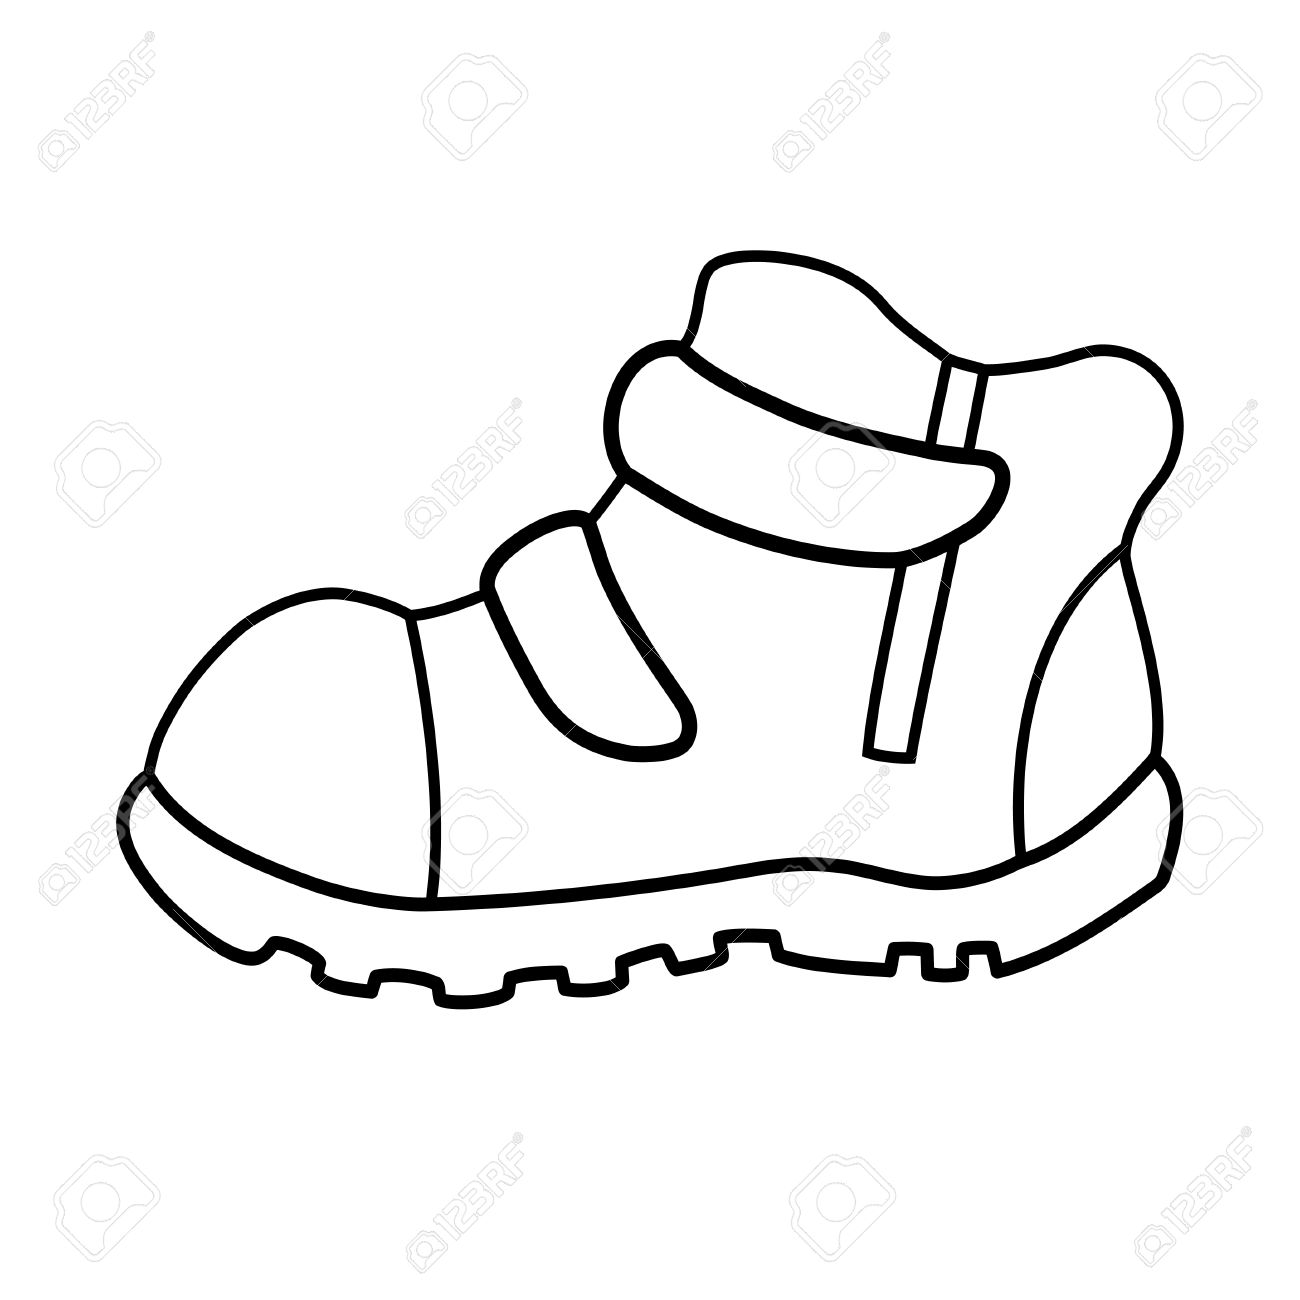 1300x1300 Hand Drawn Pair Of Kids Shoes. It Can Be Used For Decorating